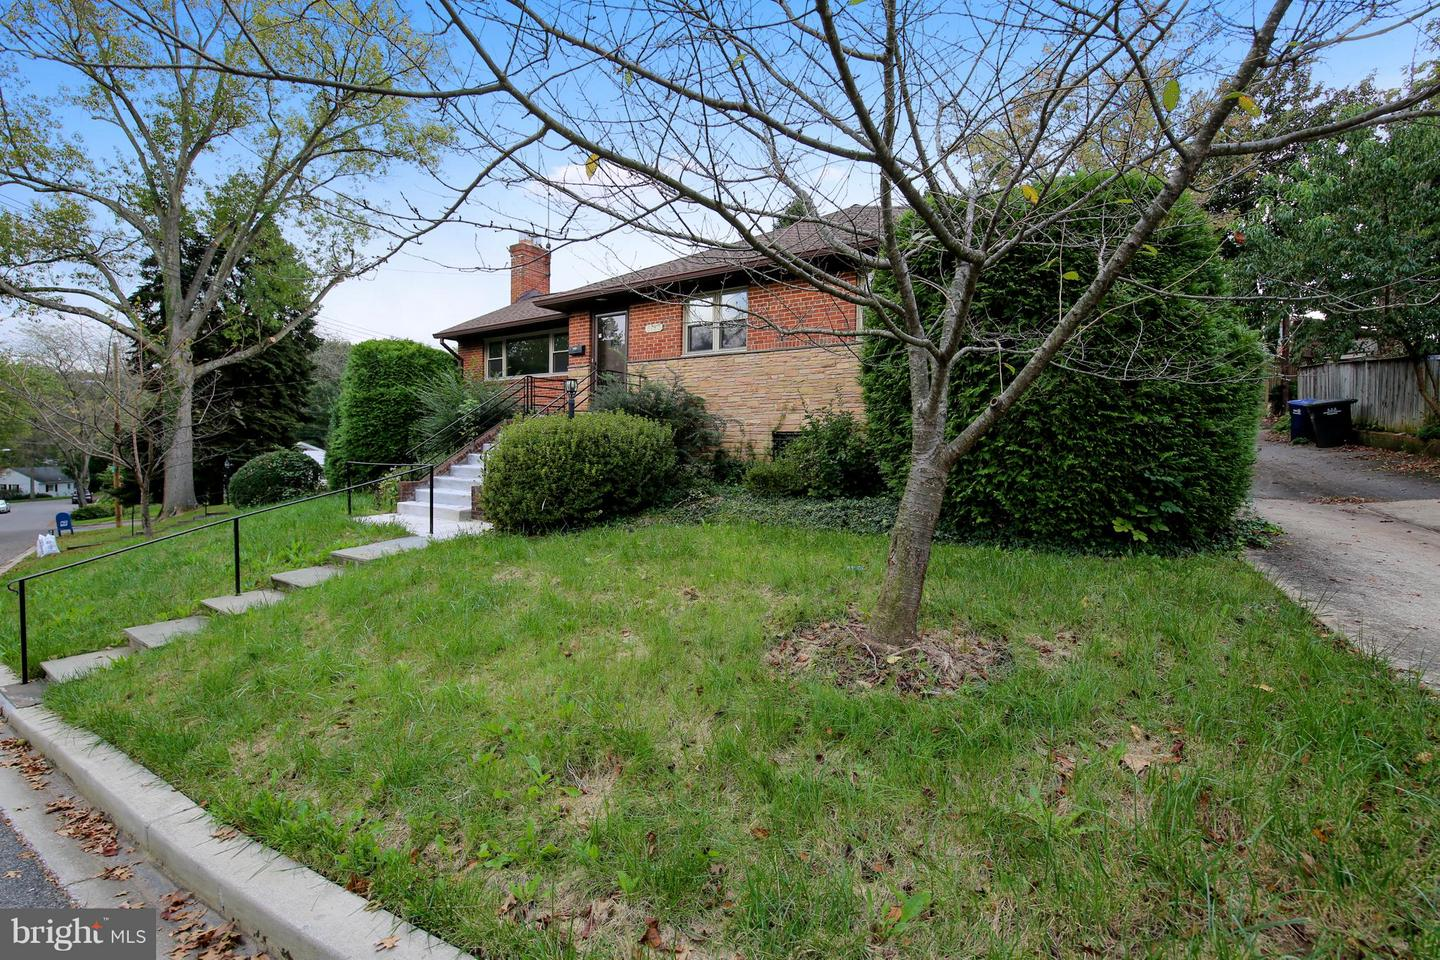 5183 LINNEAN TERRACE NW, WASHINGTON, District of Columbia